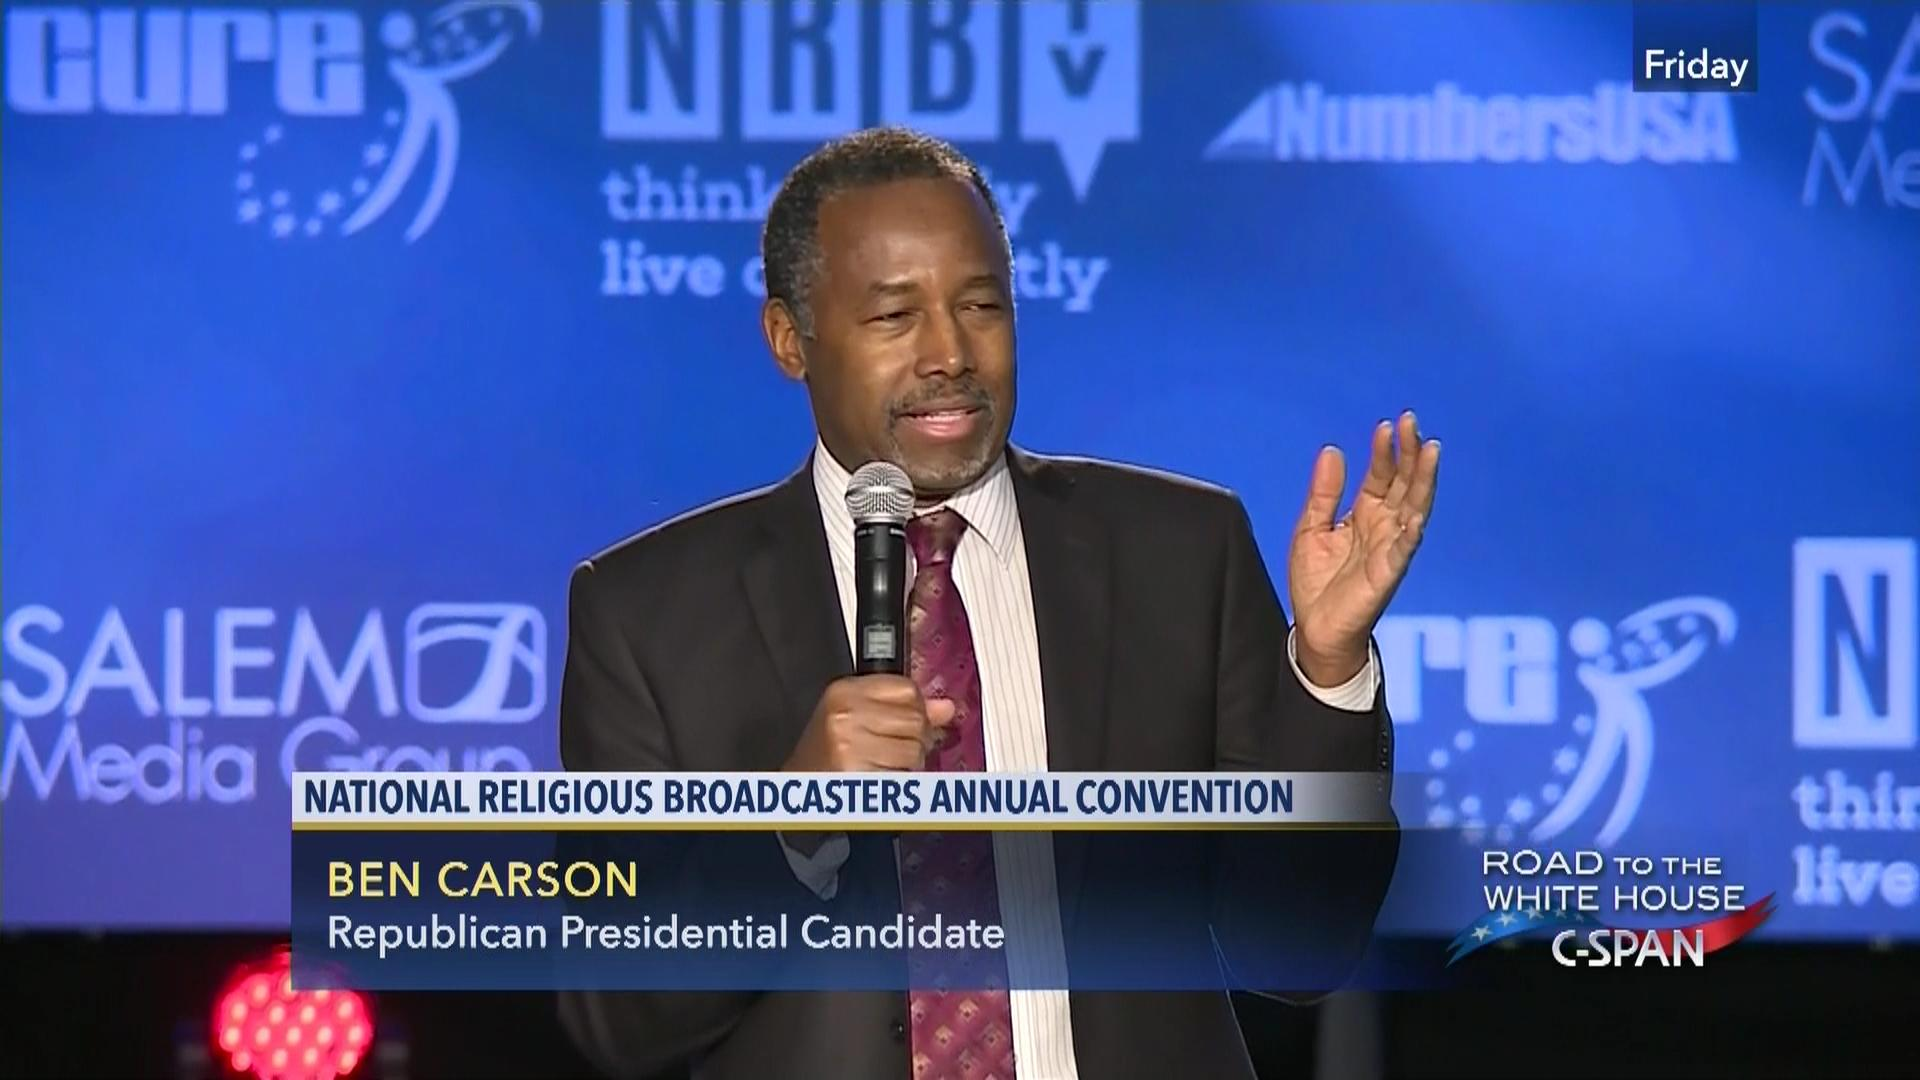 Presidential Candidate Ben Carson National Religious Broadcasters